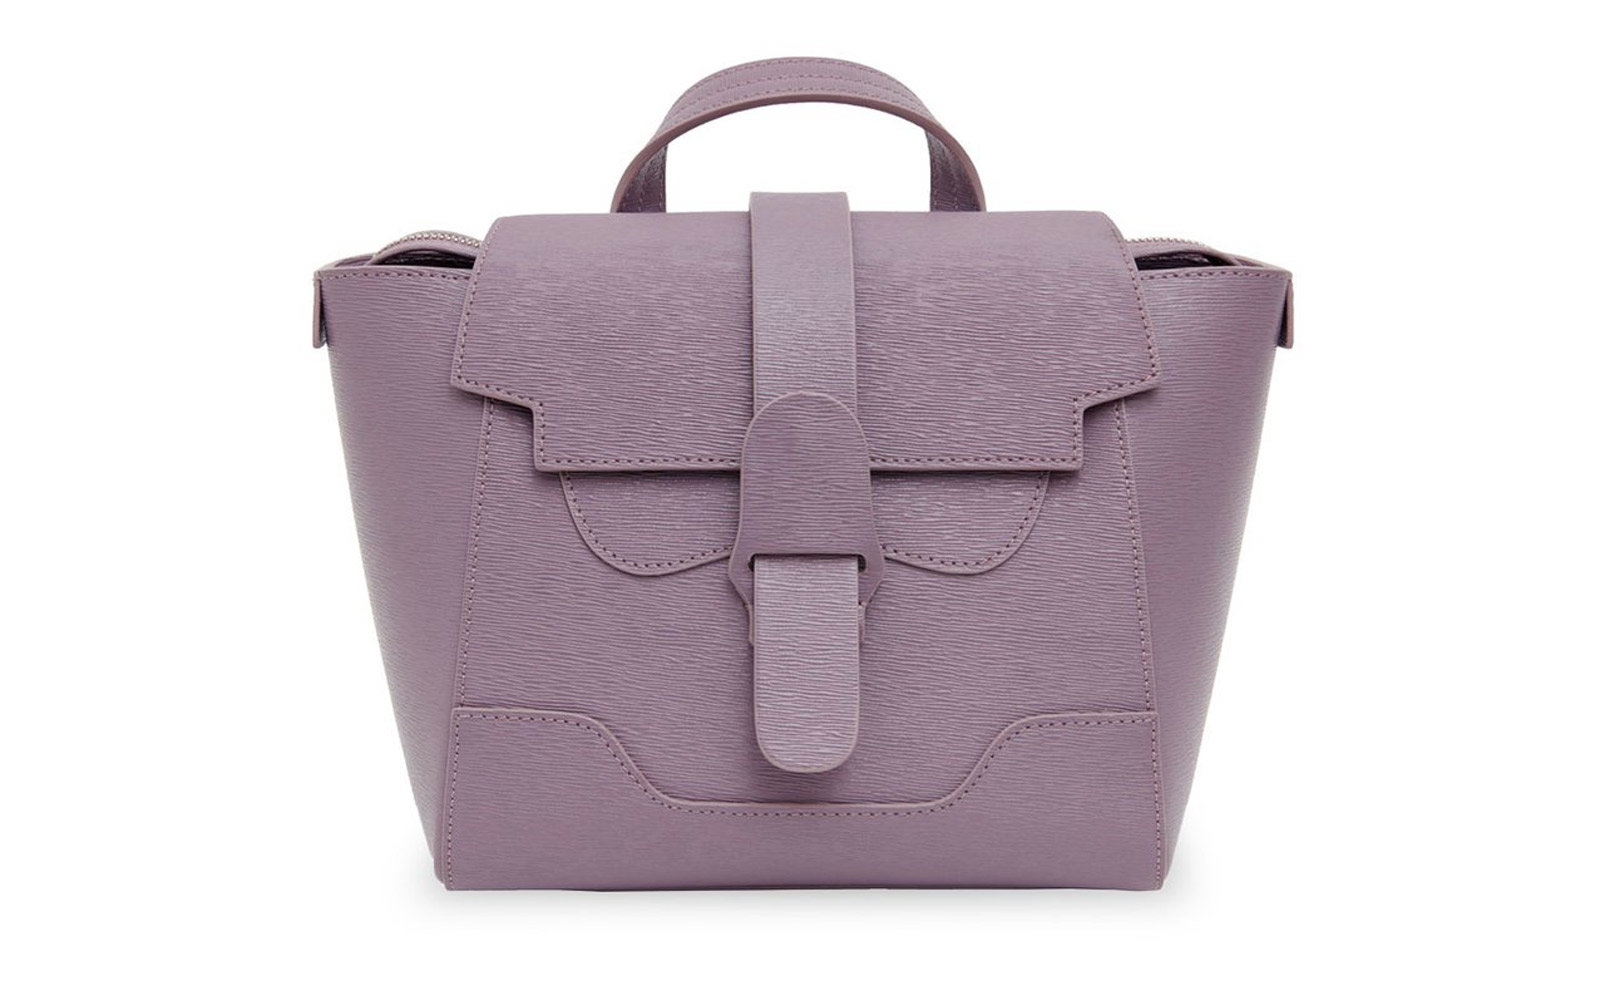 Senreve Maestra Leather Satchel